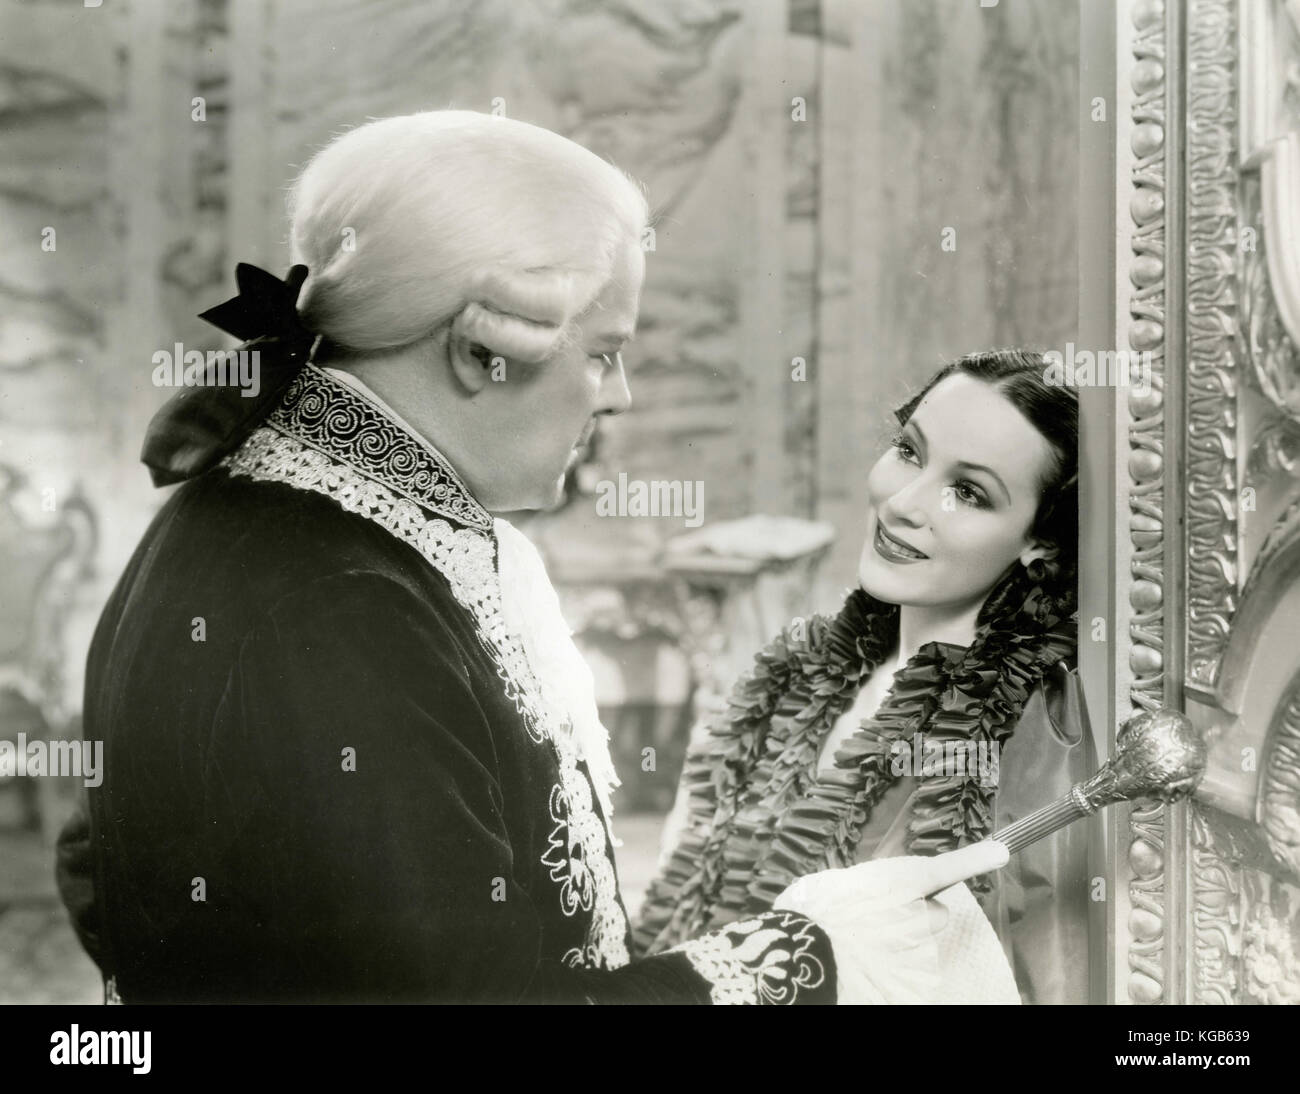 Actress Dolores Del Rio in the movie Madame du Barry, 1934 - Stock Image